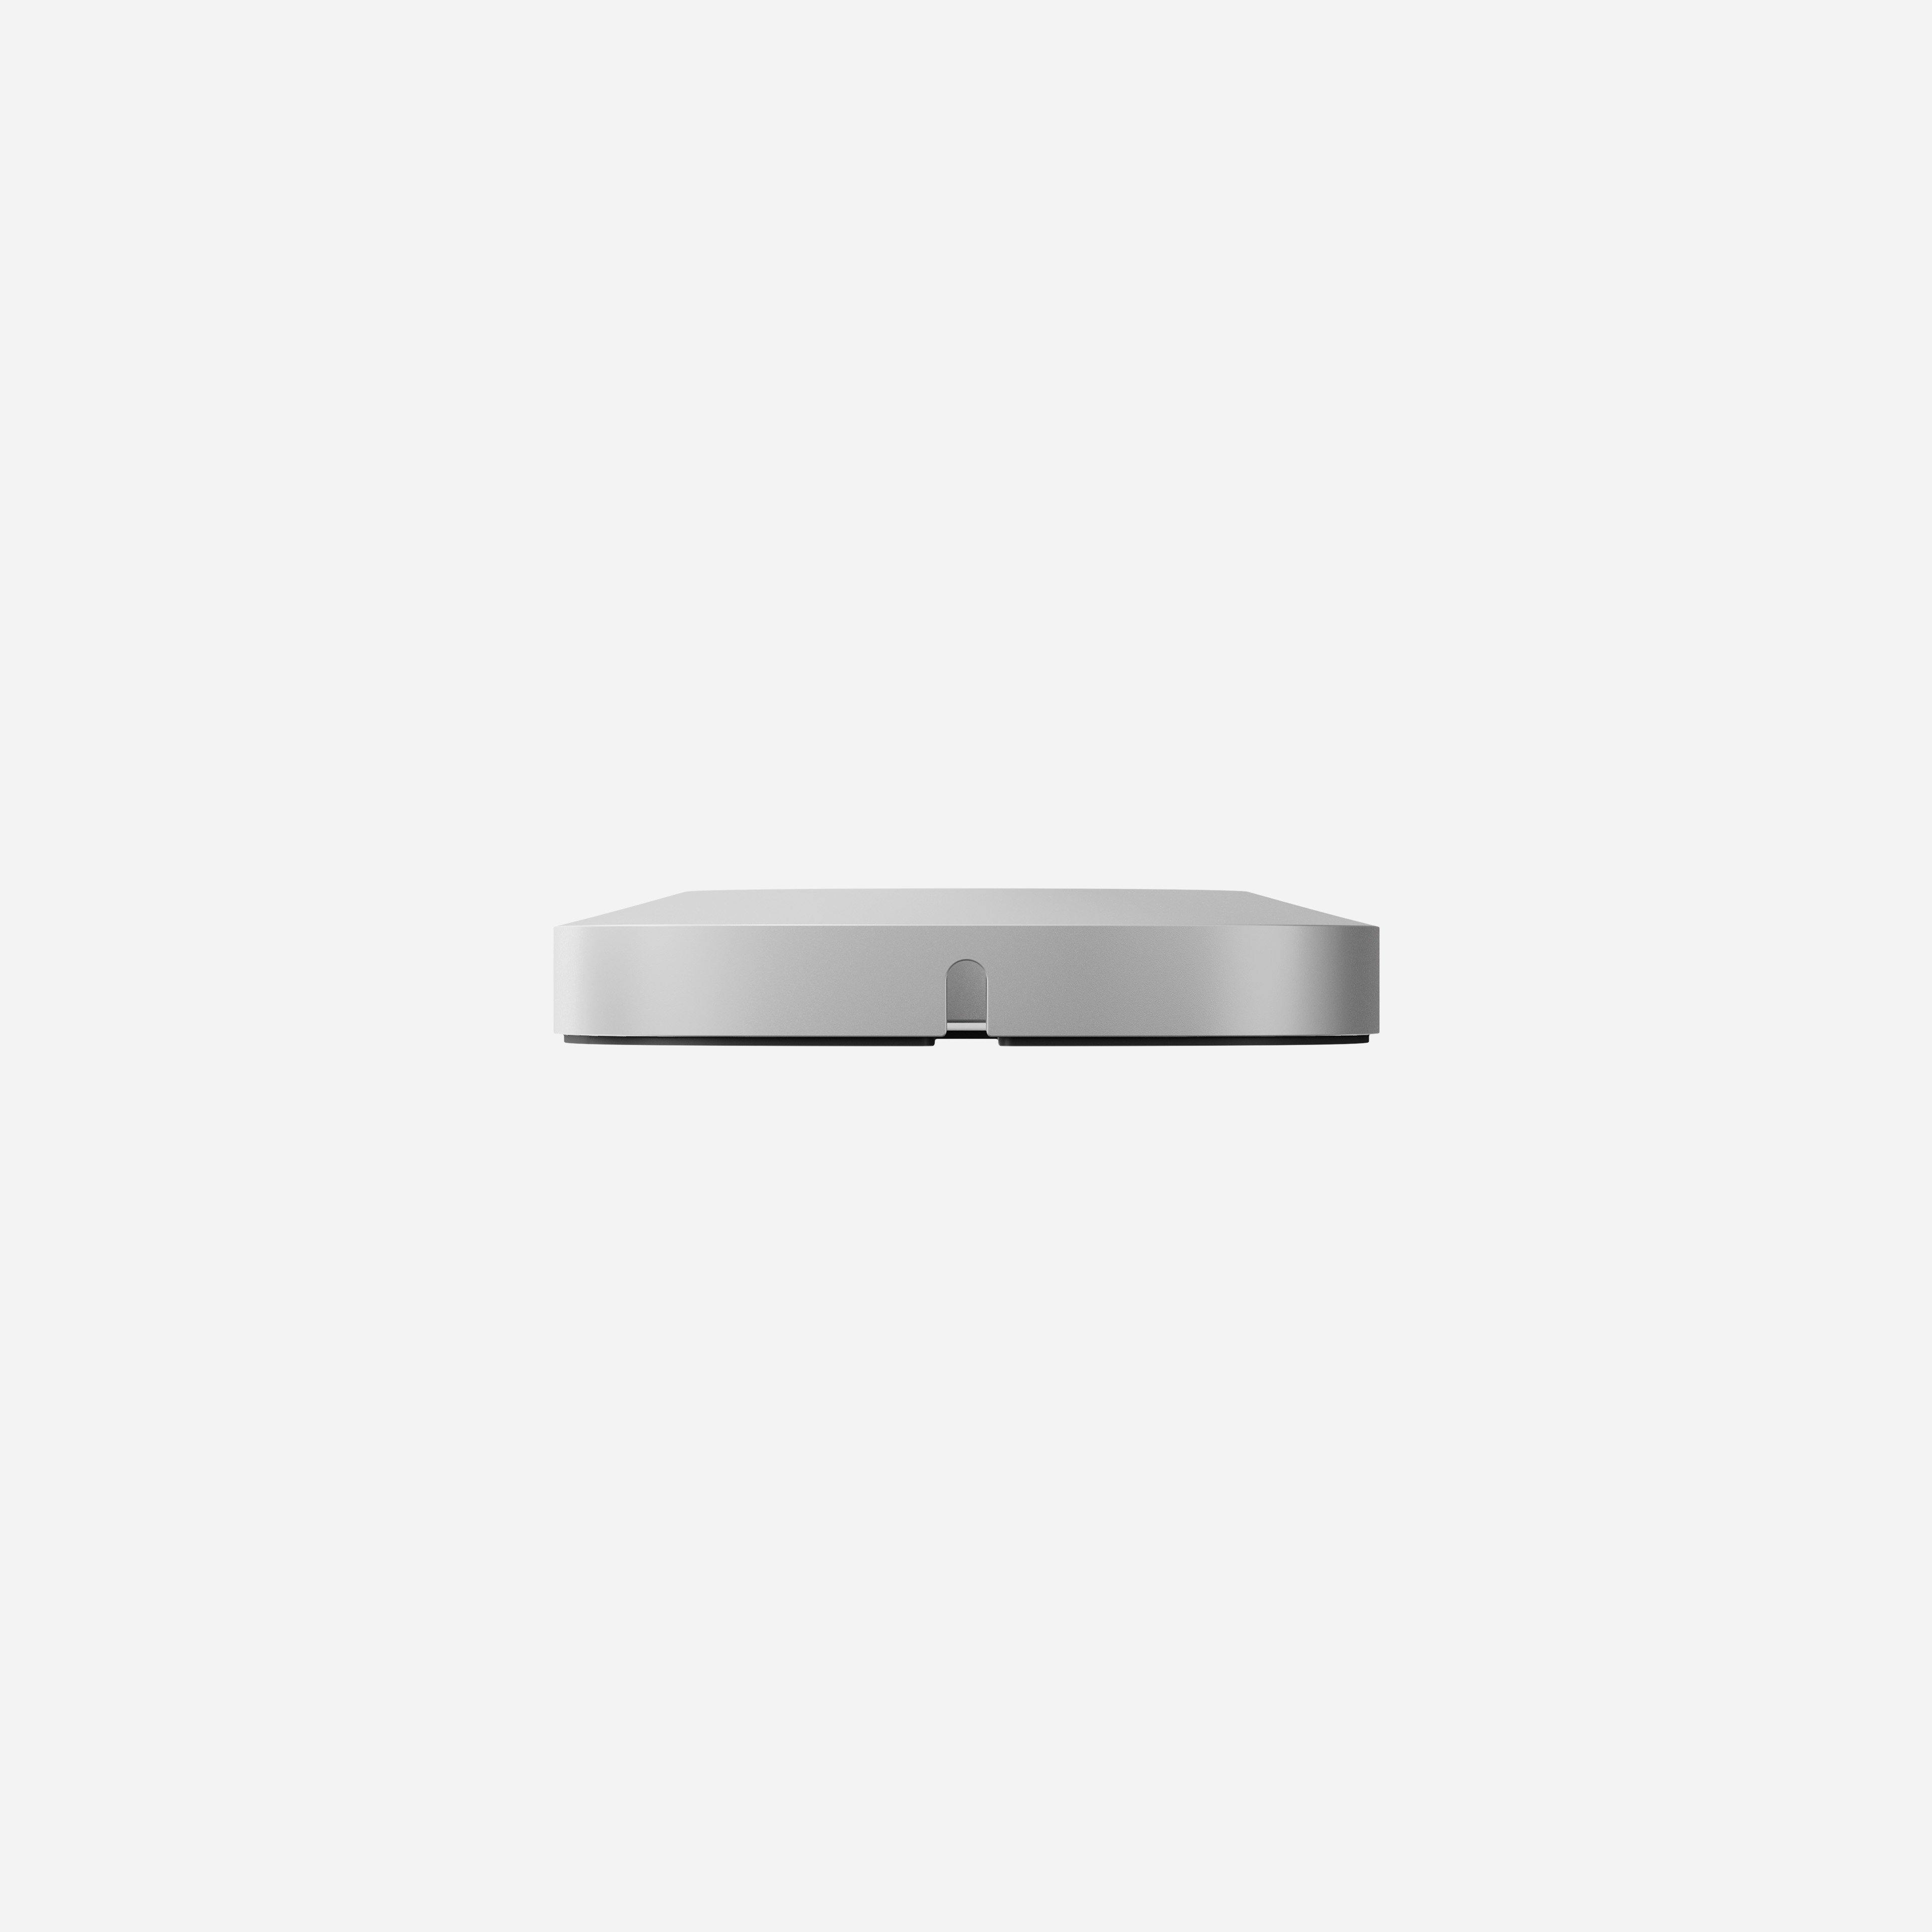 MagSafe Mount for iPhone 12 | Nomad®